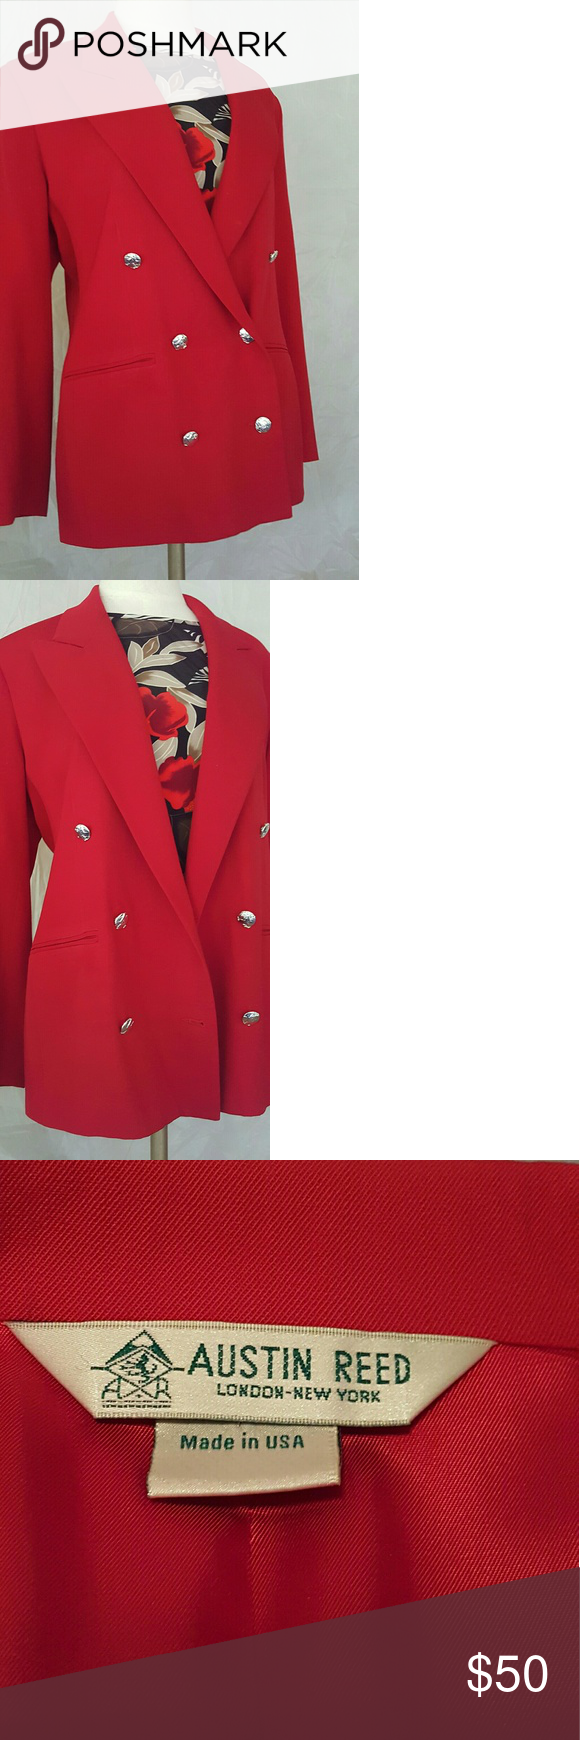 50austin Reed Double Breasted Wool Jacket Blazer Clothes Design Wool Jacket Fashion Design